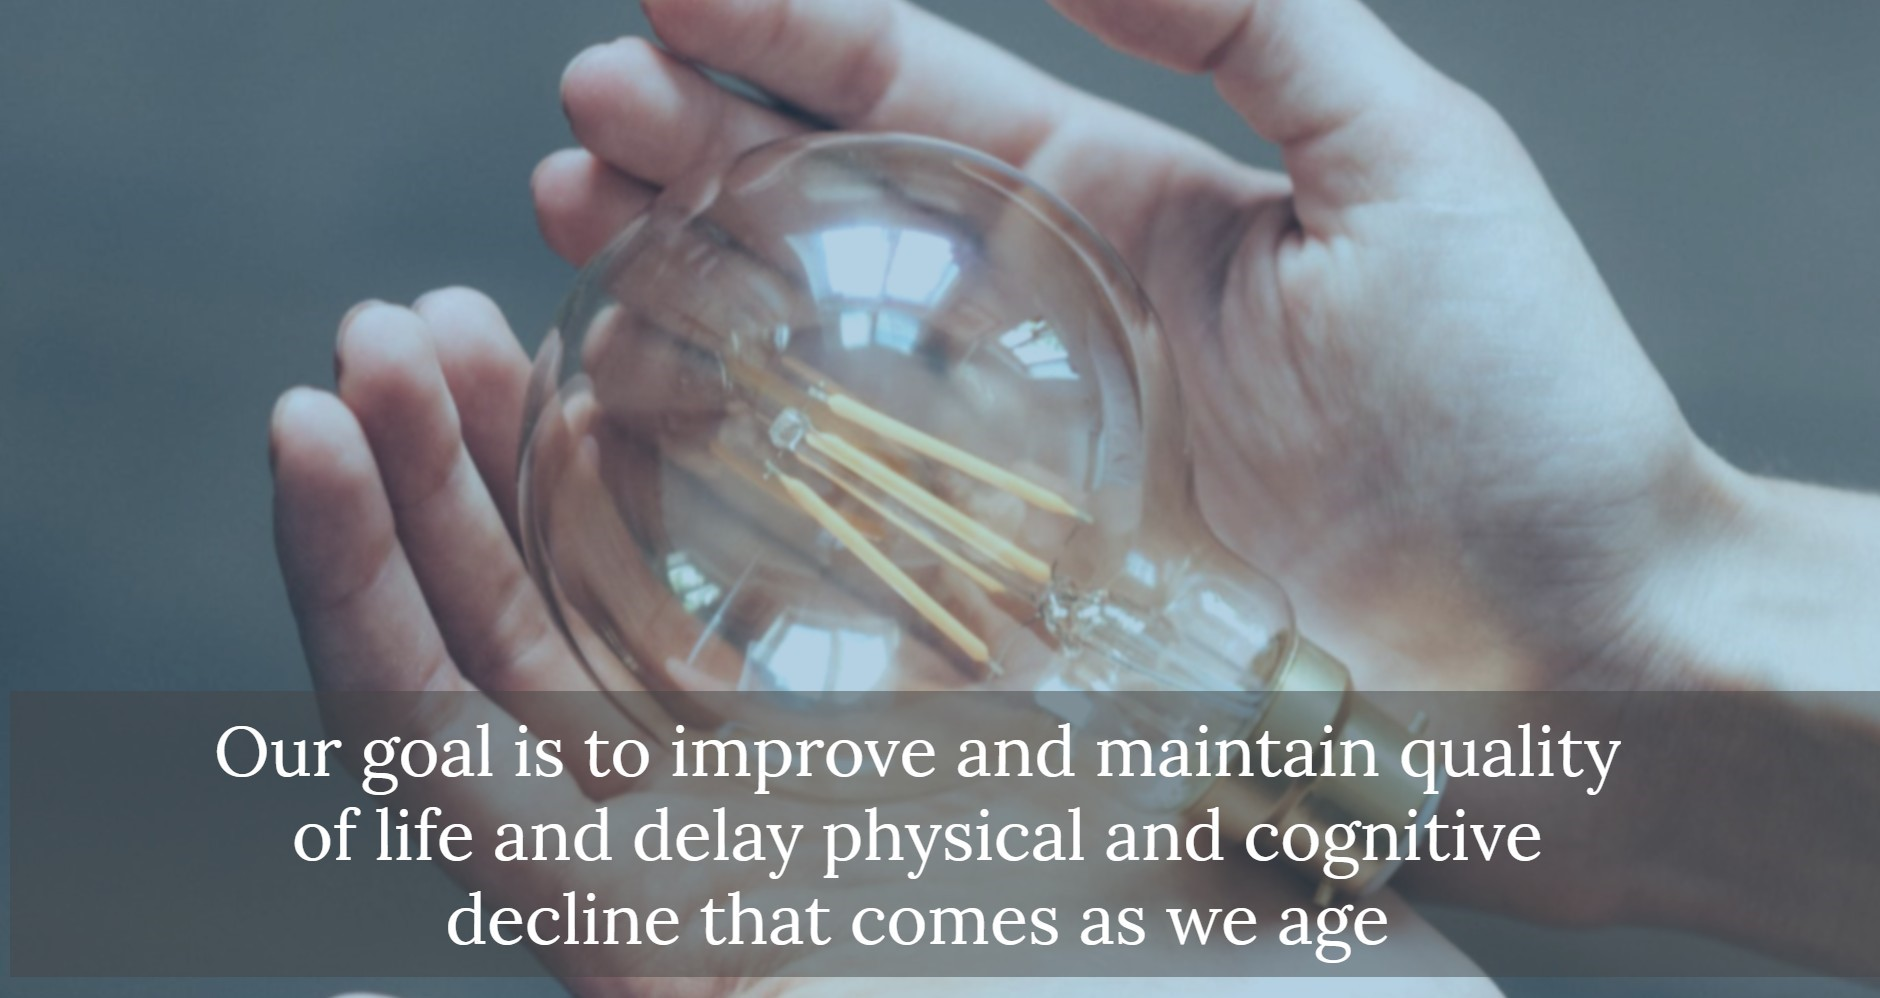 Hands holding lightbulb. Text: Our goal is to improve and maintain quality of life and delay physical and cognitive decline that comes as we age.